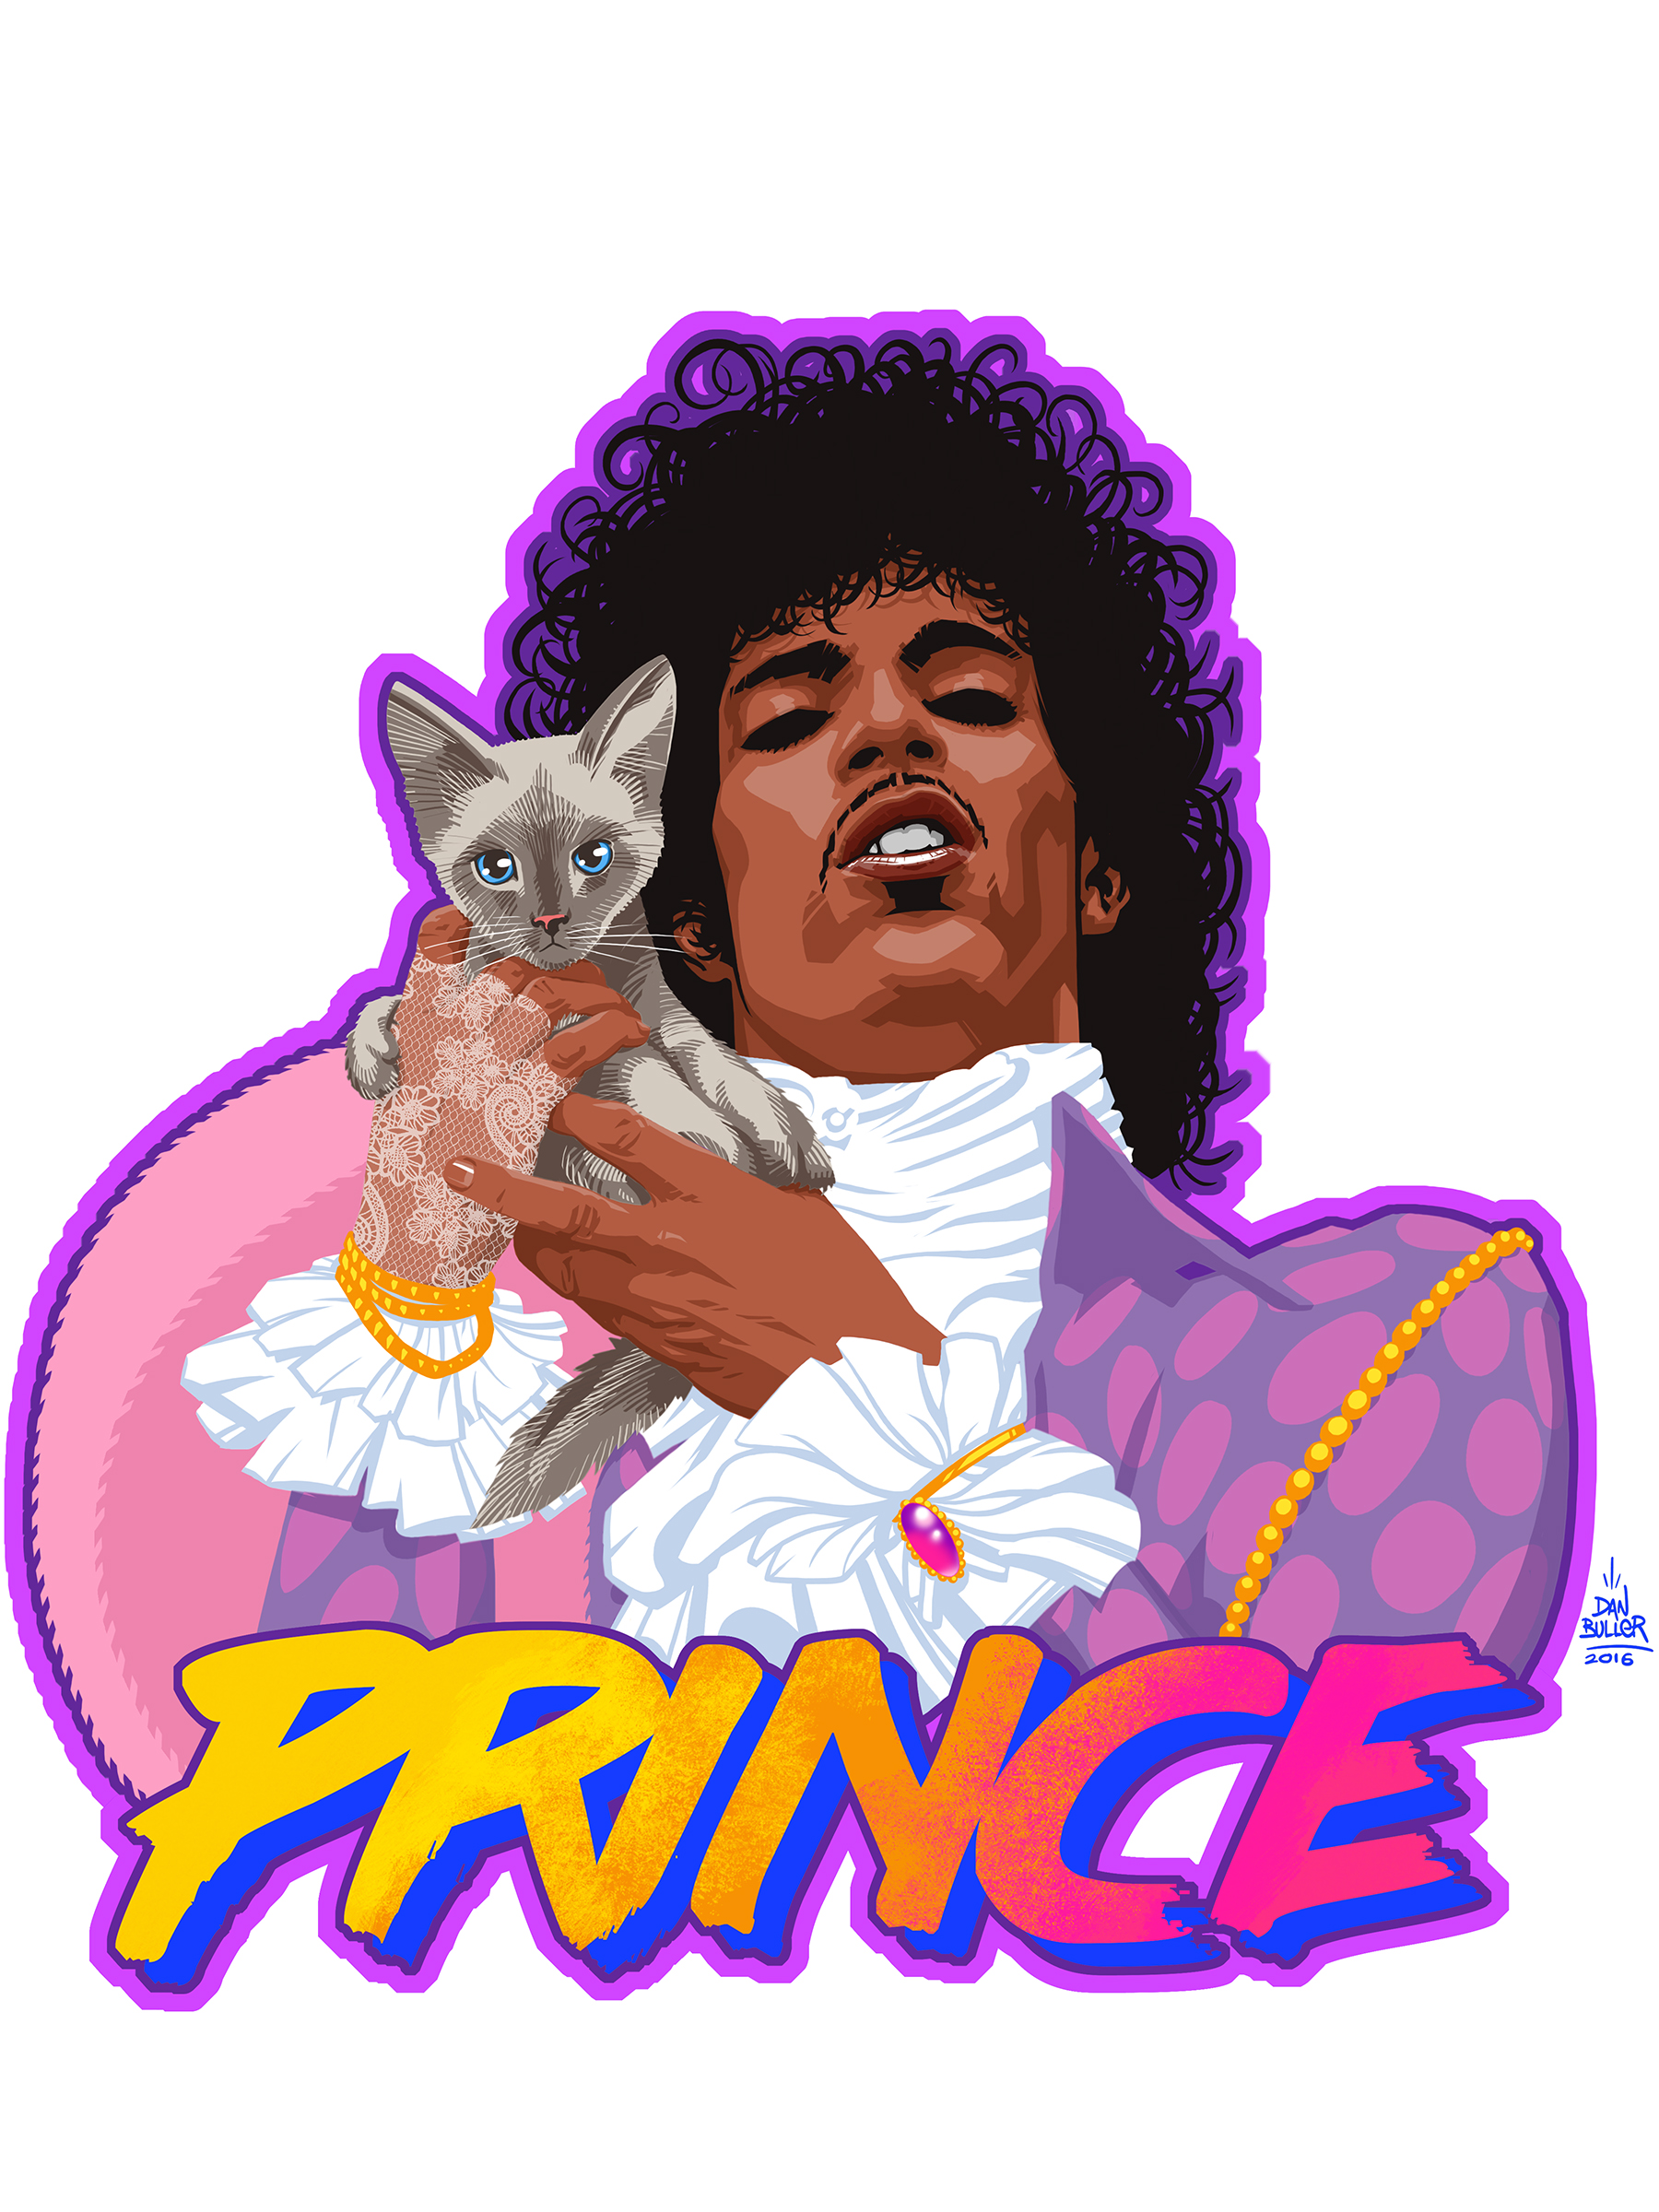 Prince and Doctor Fink the Kitten